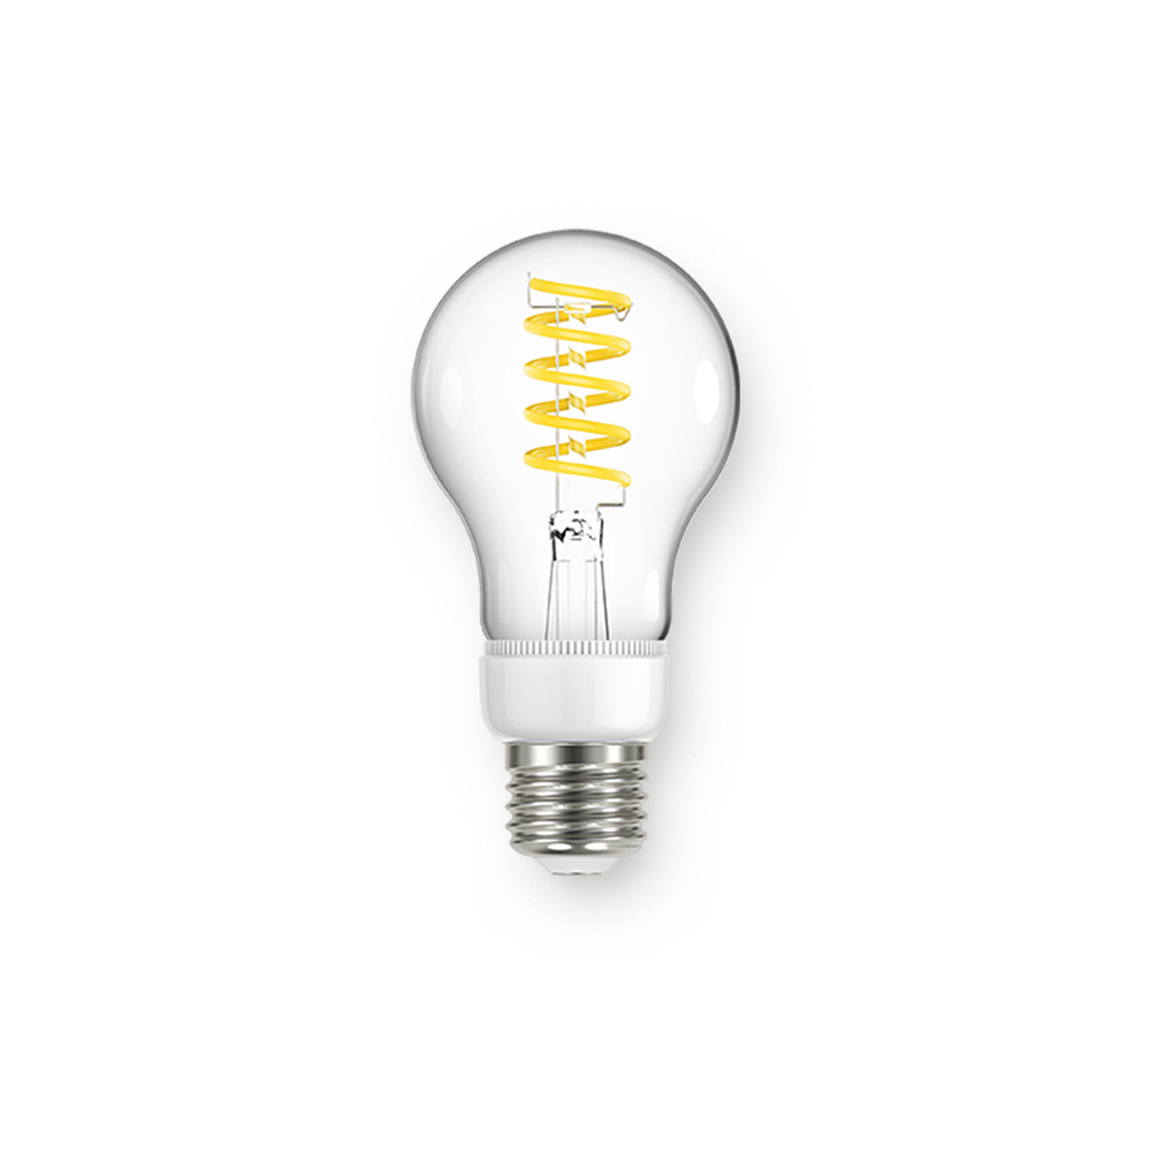 Filament A60 Spiral Clear 470lm Dimmable E27